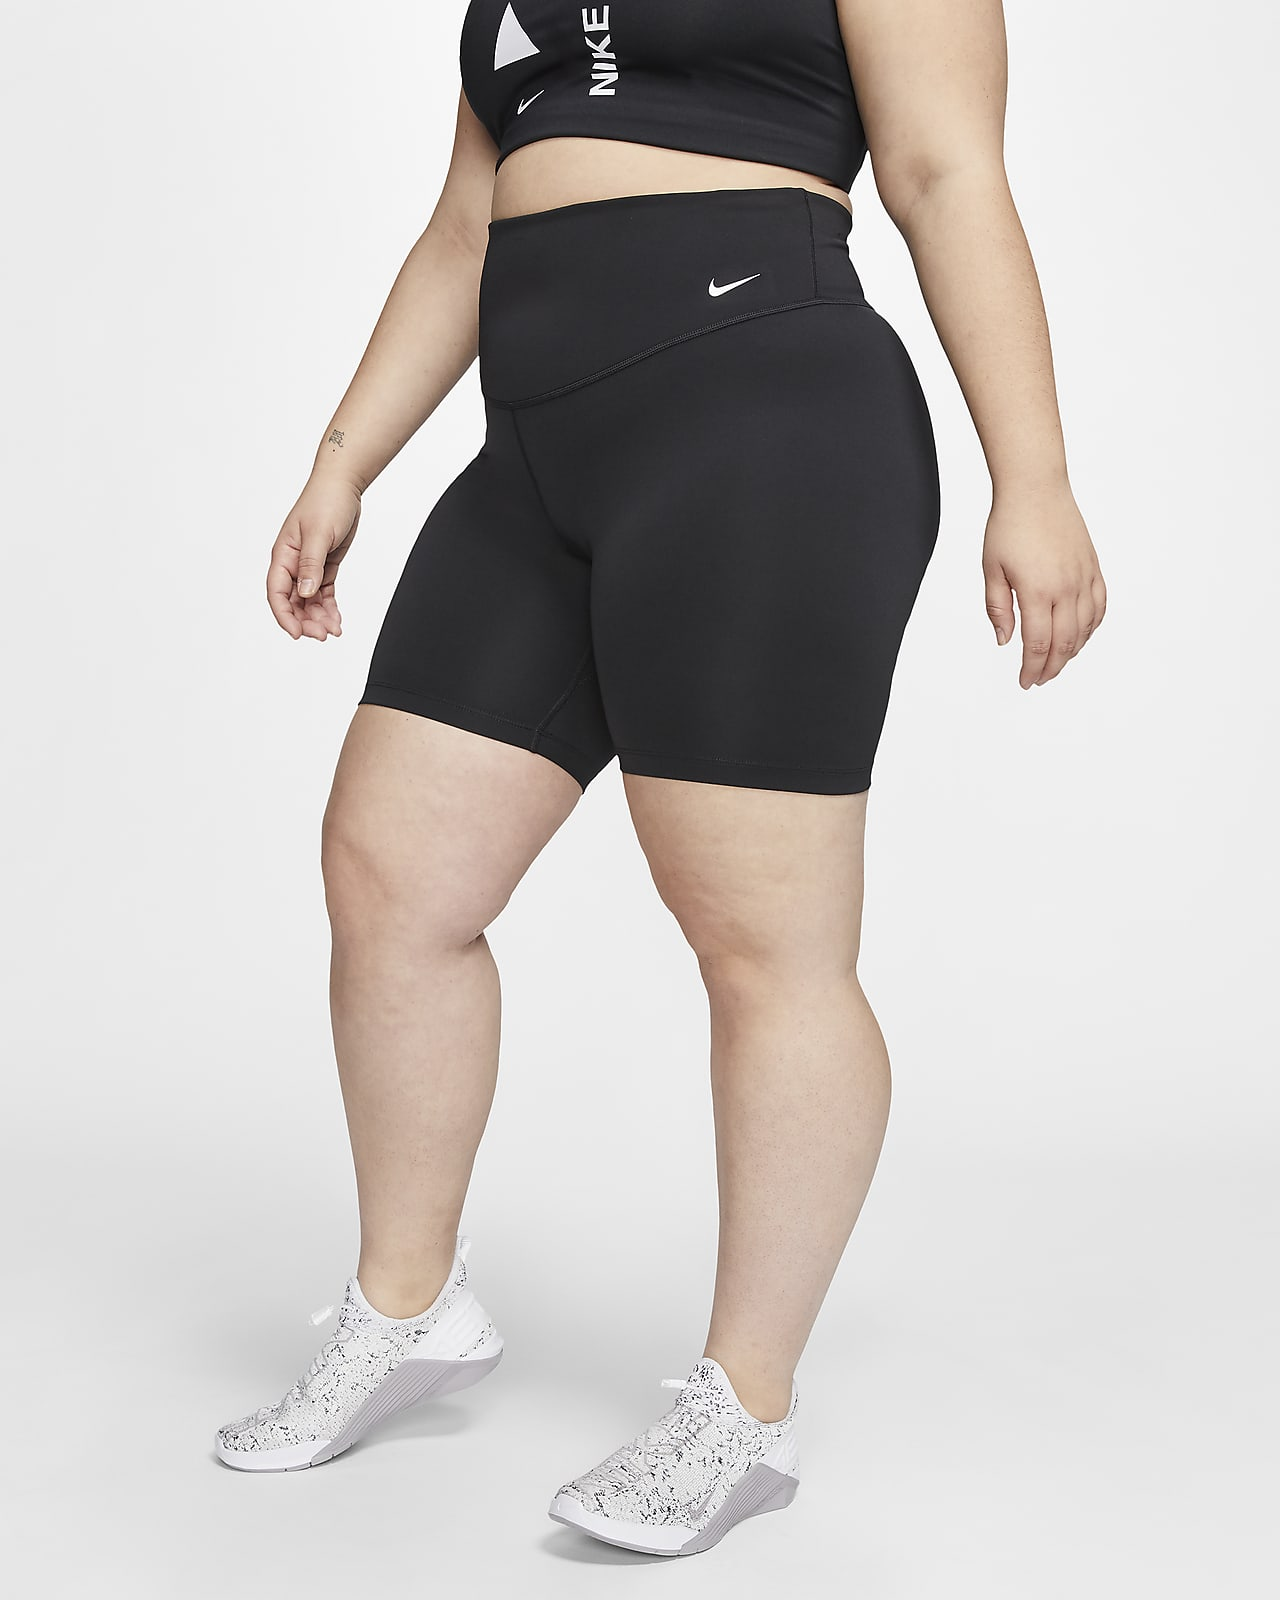 Nike One Women's 18cm (approx.) Shorts (Plus size)